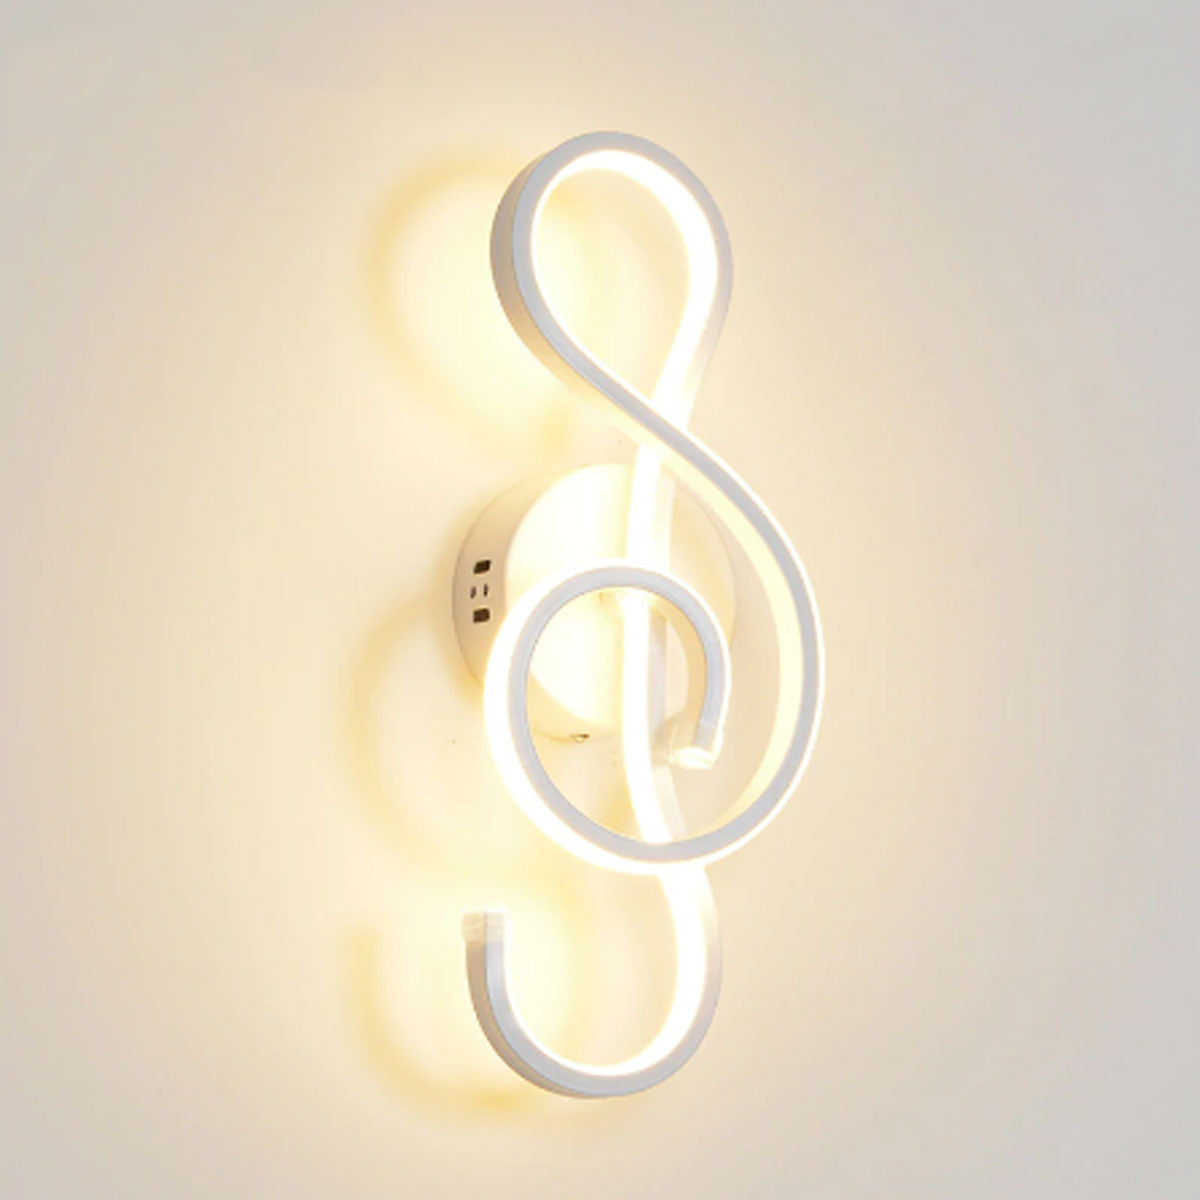 Gorgeous Black/White Treble Clef Wall Lamp with 1-3 m² Lighting Area